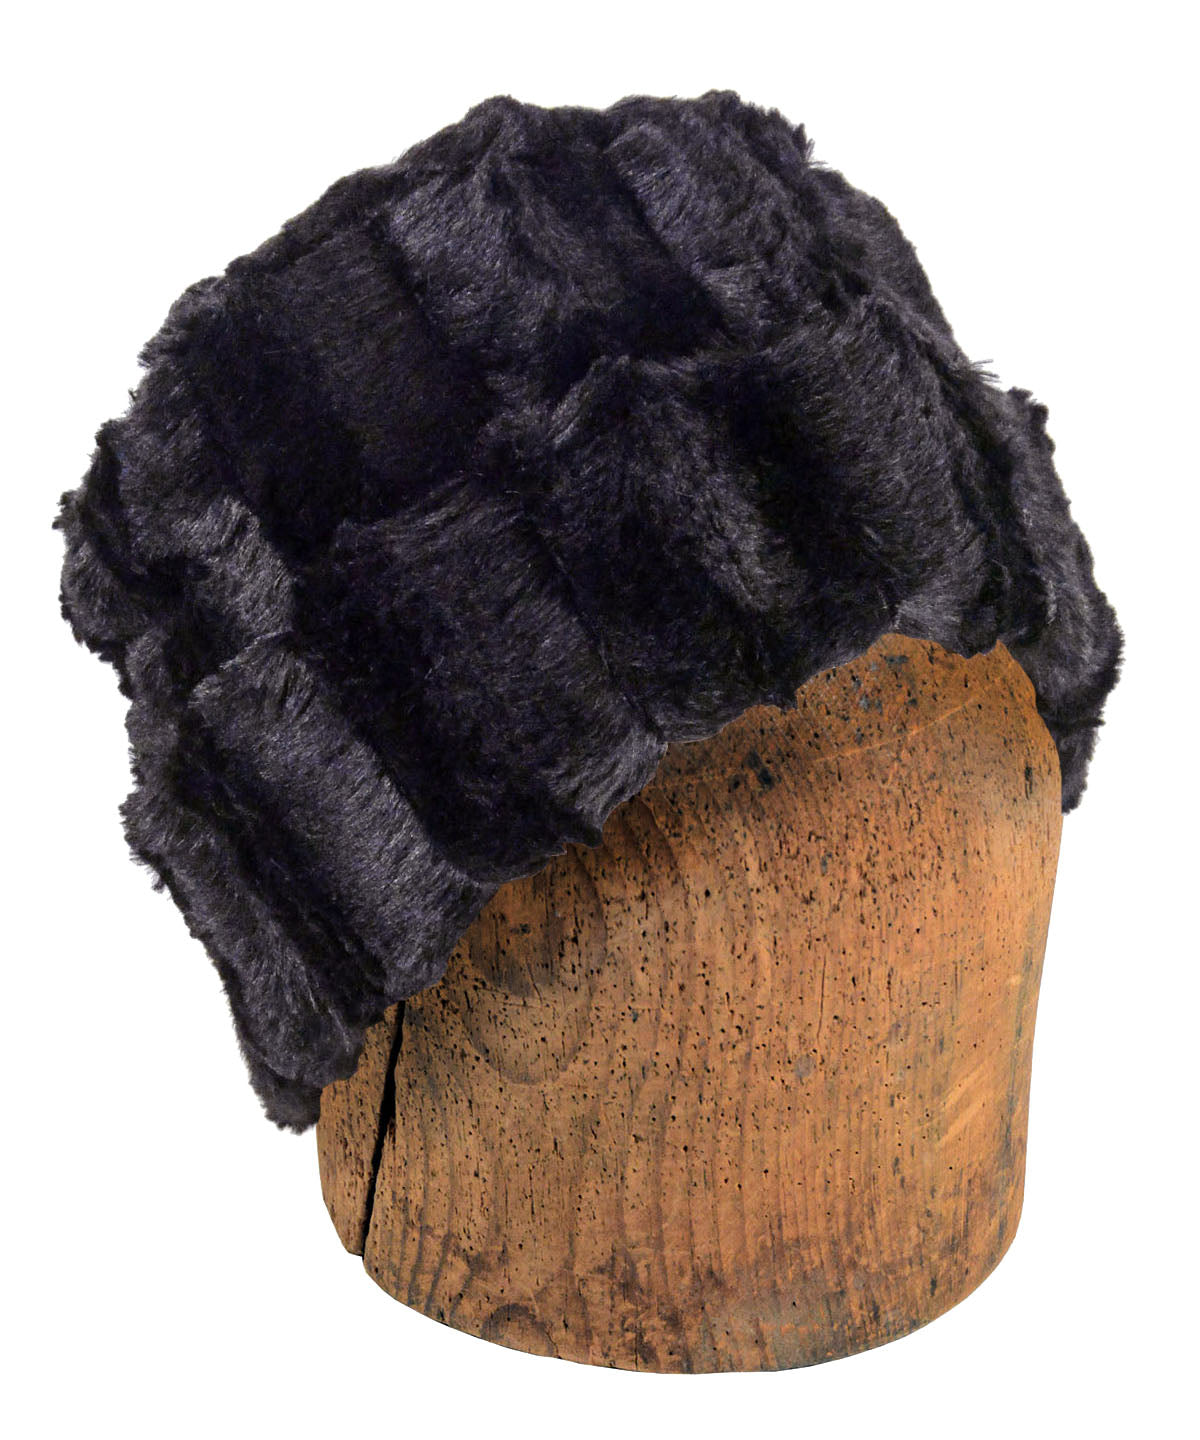 Men's Cuffed Pillbox, Reversible (Solid or Two-Tone) - Minky Faux Fur in Black